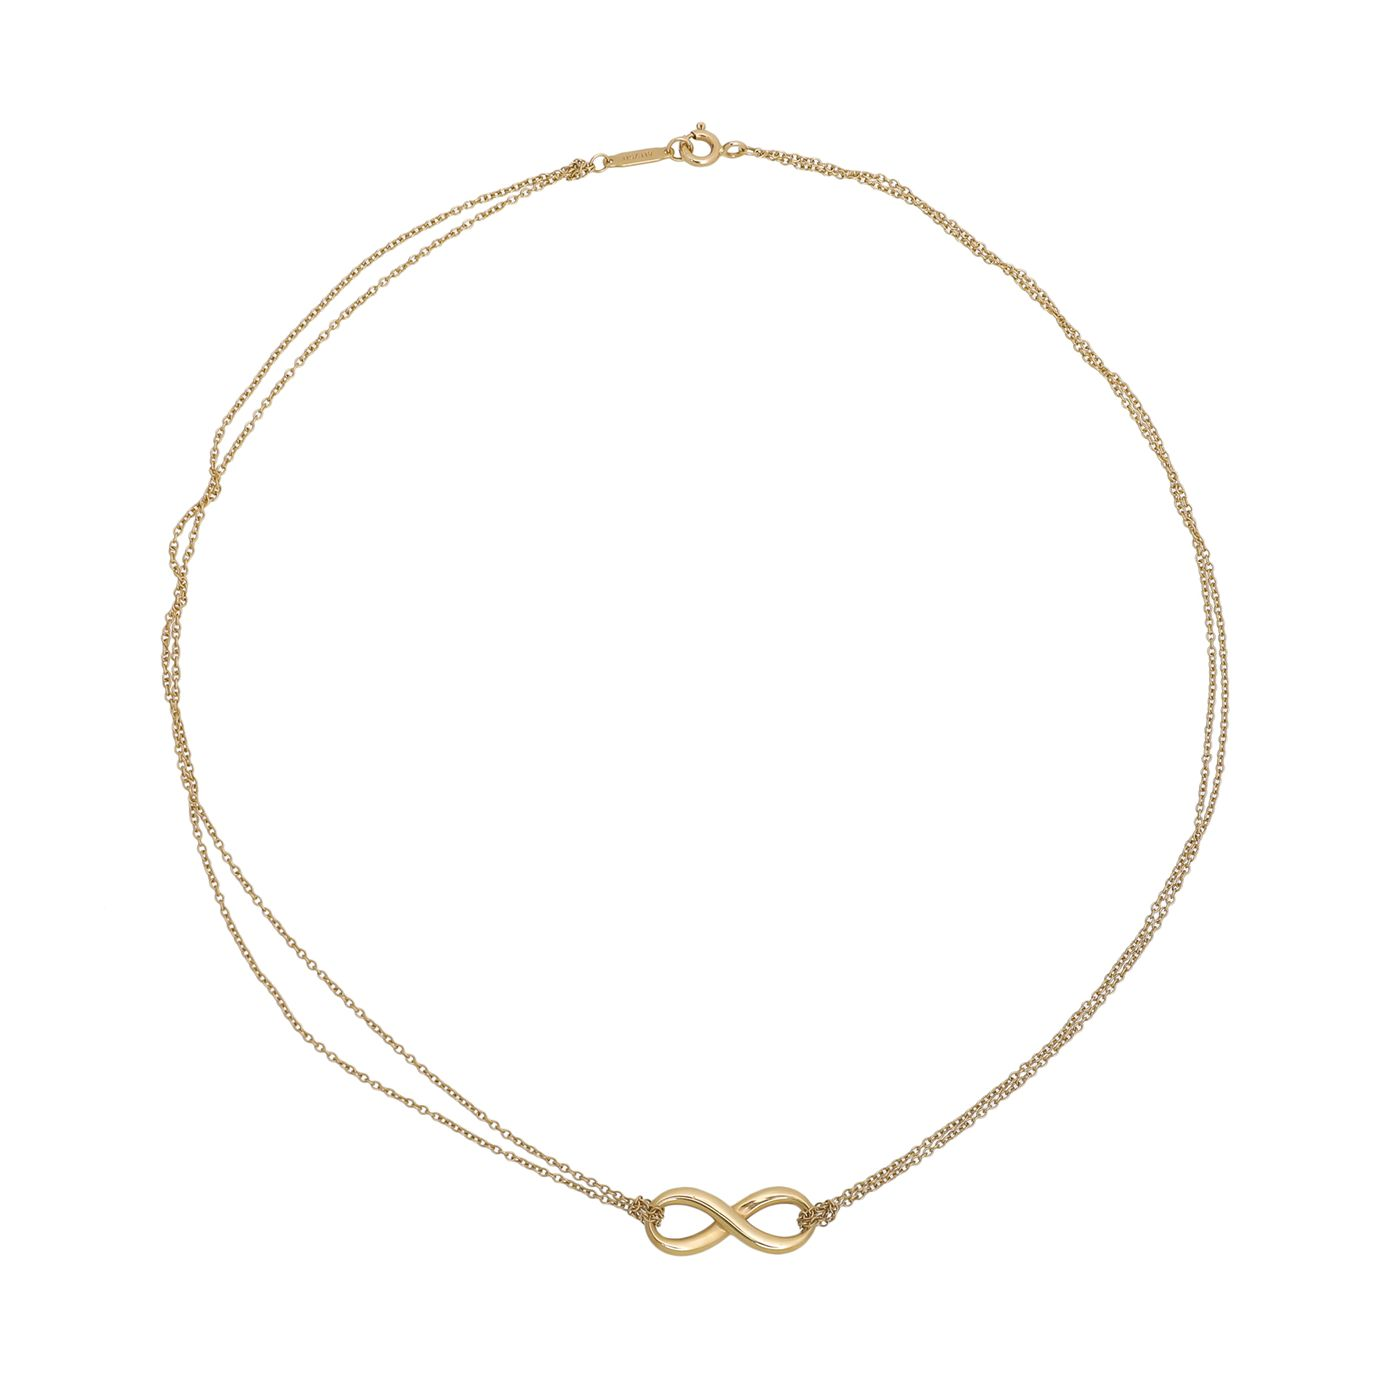 Tiffany & Co 18K Yellow Gold Infinity Pendant Necklace